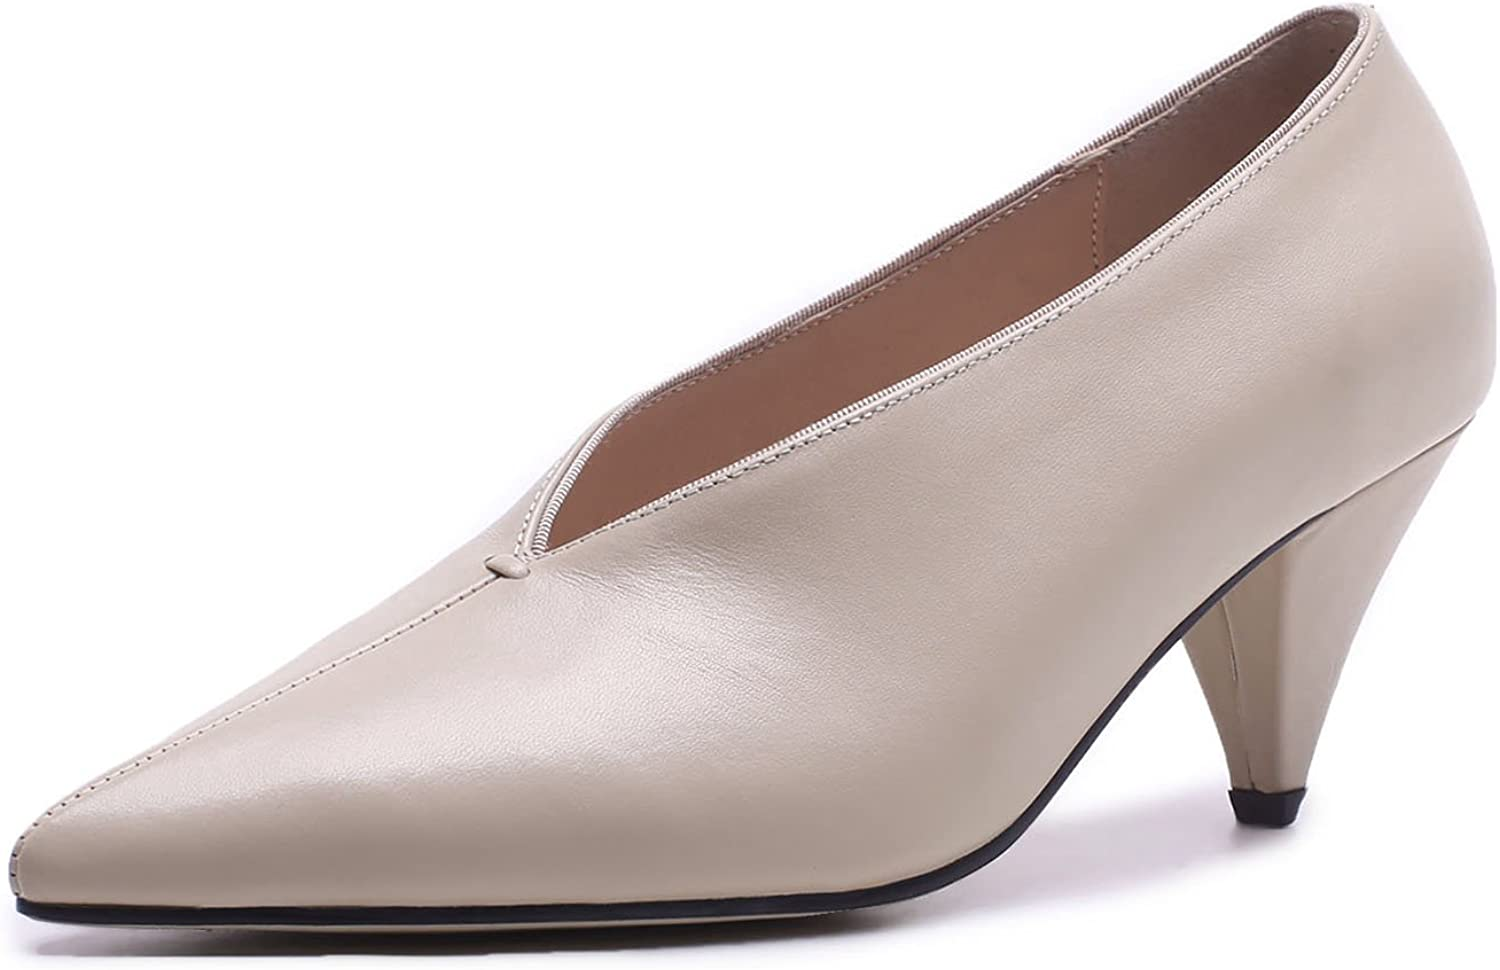 CHENSIR9 Women Closed Toe Ankle Block Heel Pointed Toe Single shoes